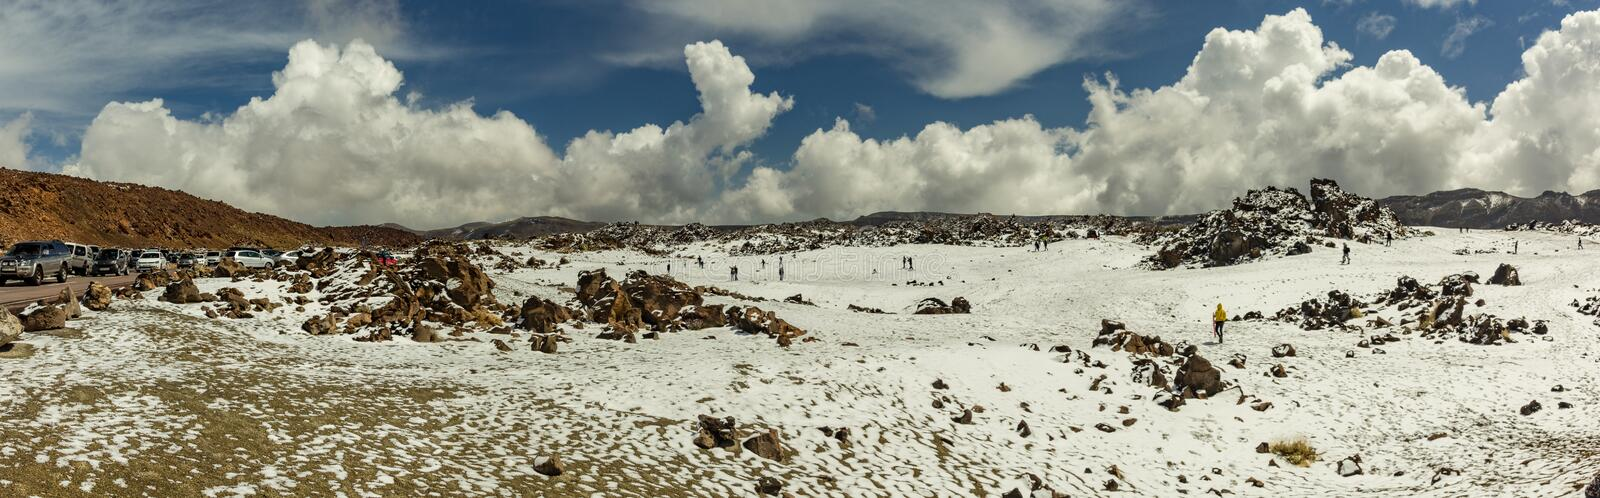 Base of volcano Teide. Valley of lava with white snow spots, partly covered by the beautiful clouds. Bright blue sky. Teide stock images